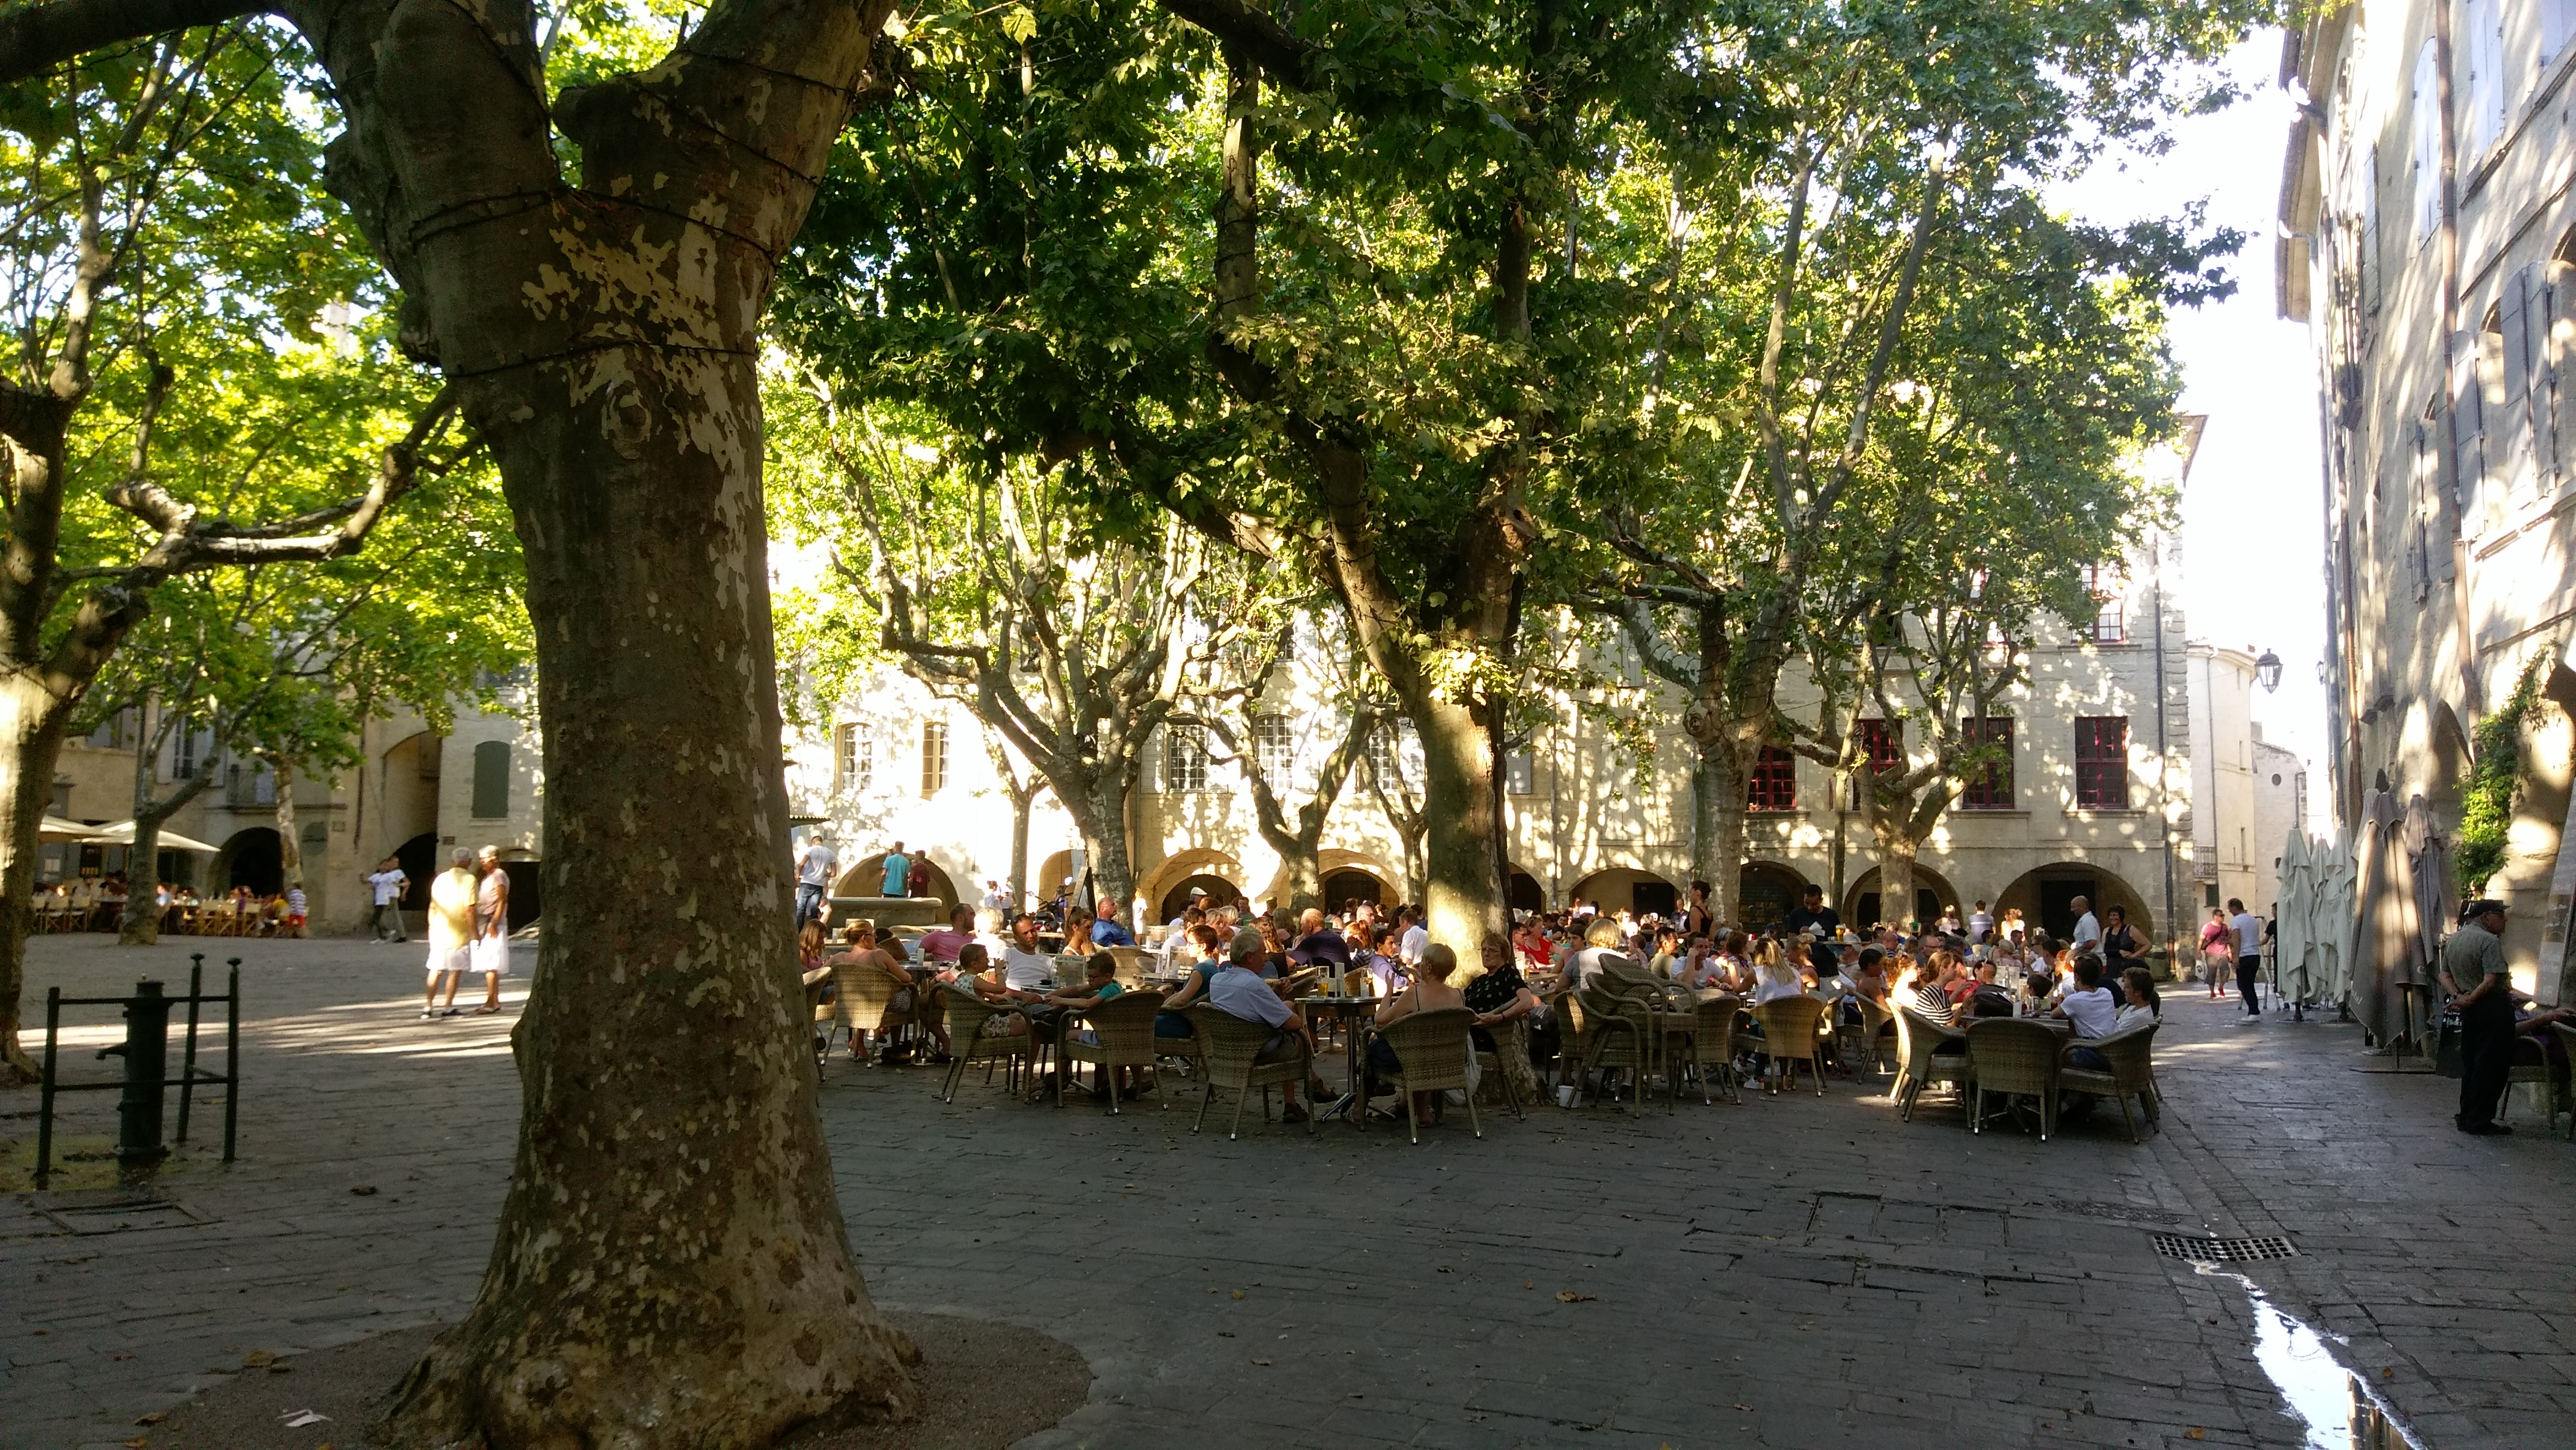 Main Plaza in Carcassonne